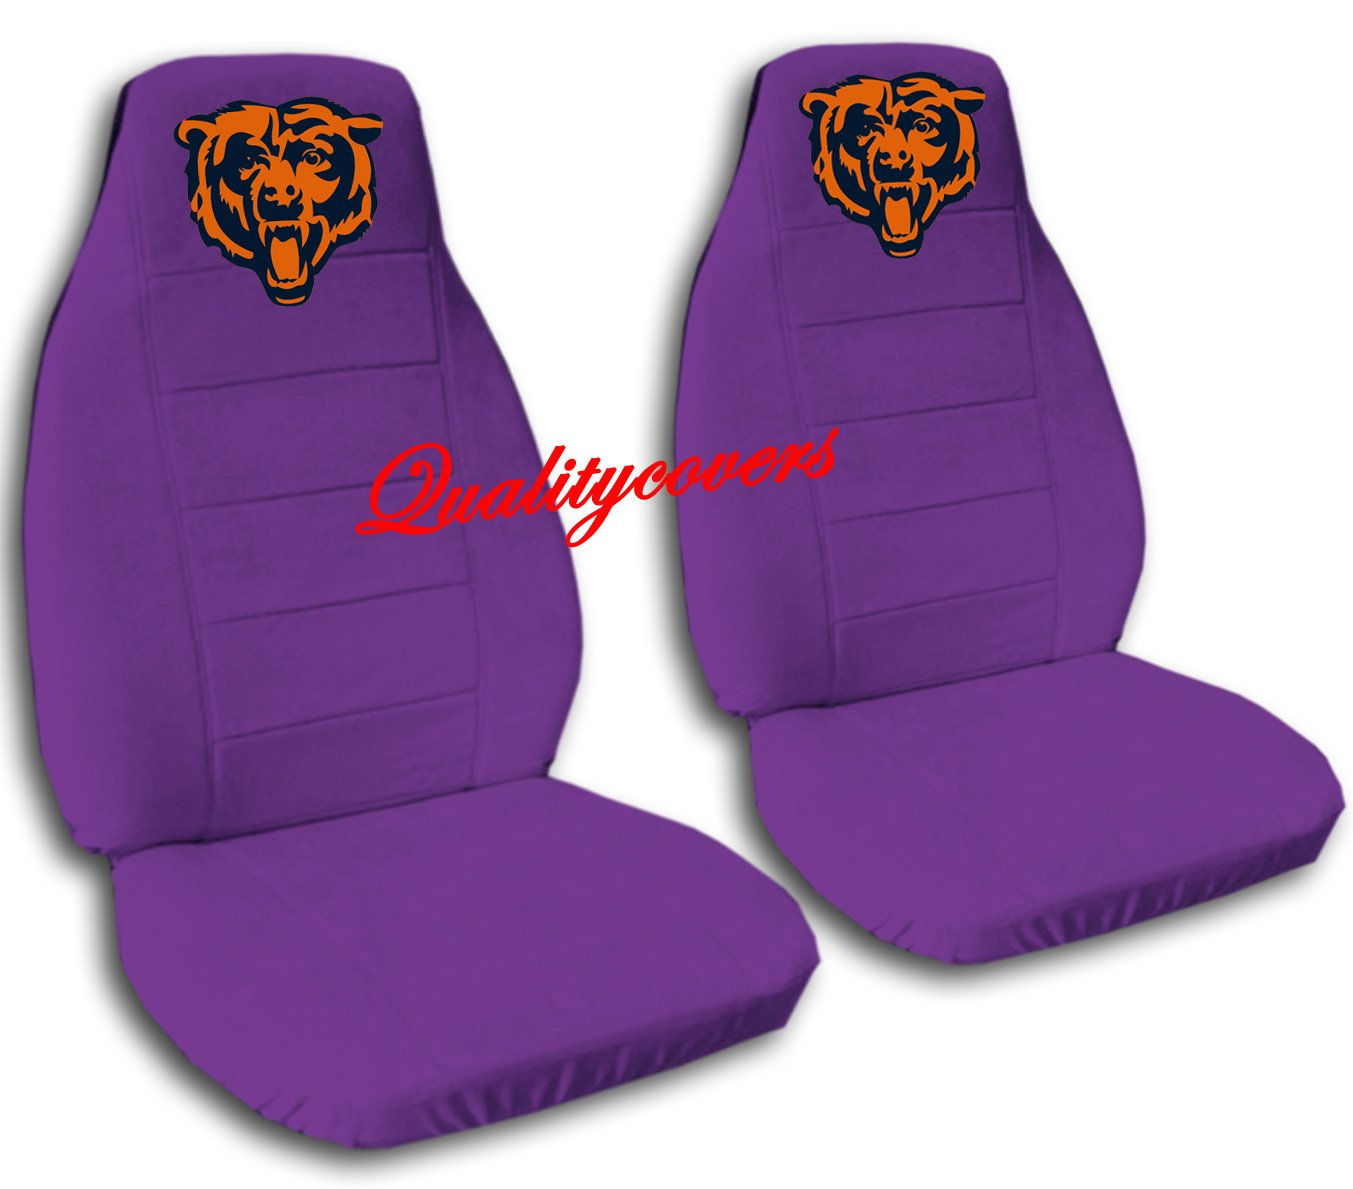 2 Purple Chicago seat covers for a 2007 to 2012 Ford Fusion. Side airbag friendly.